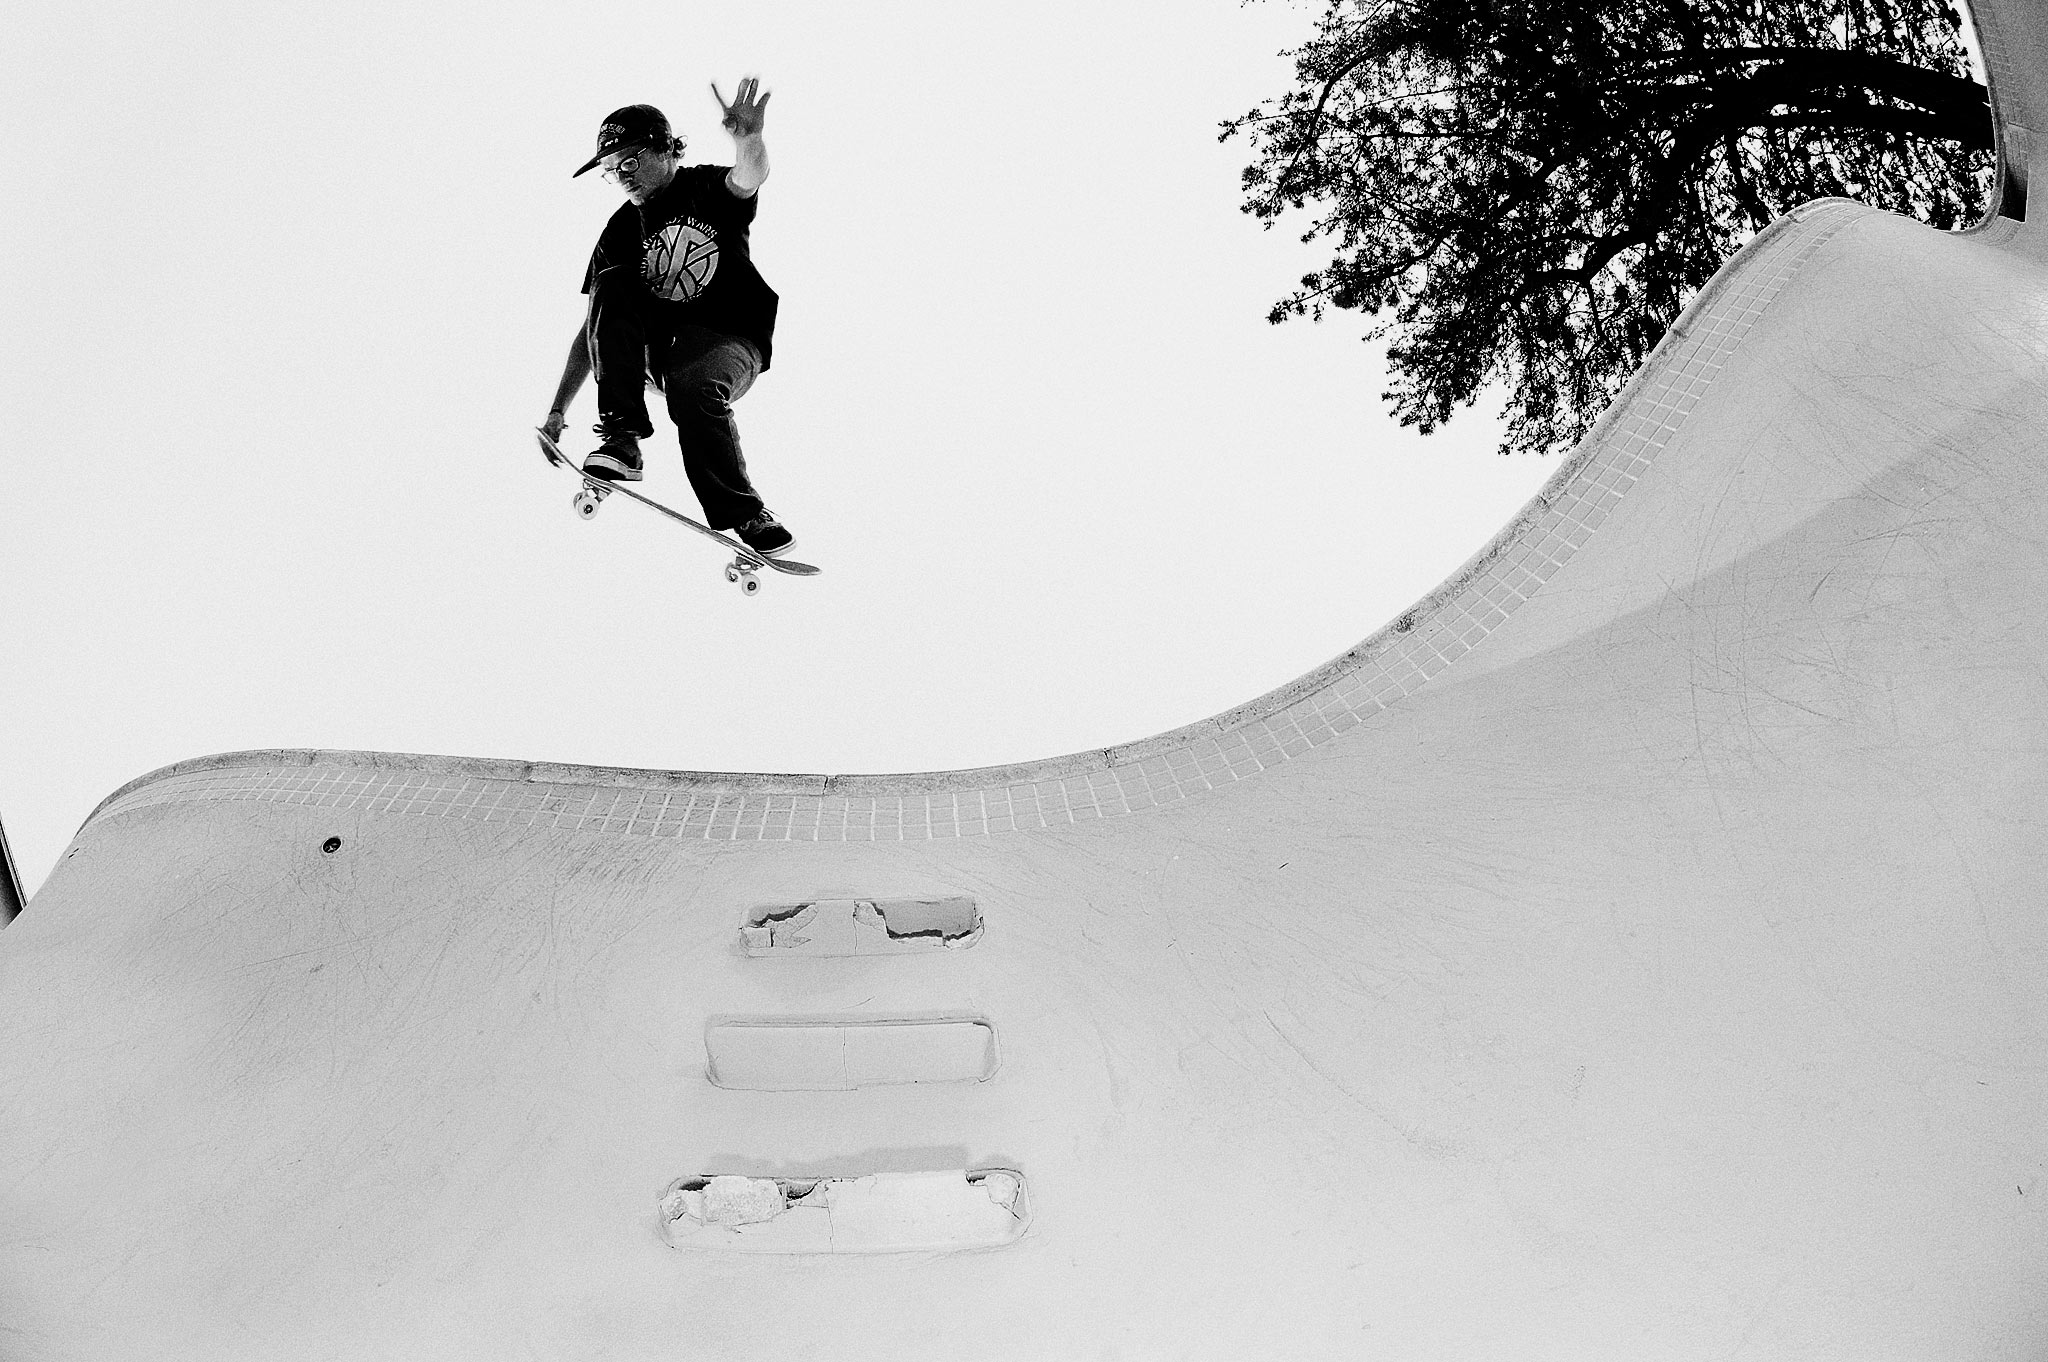 Ben Raybourn, backside air